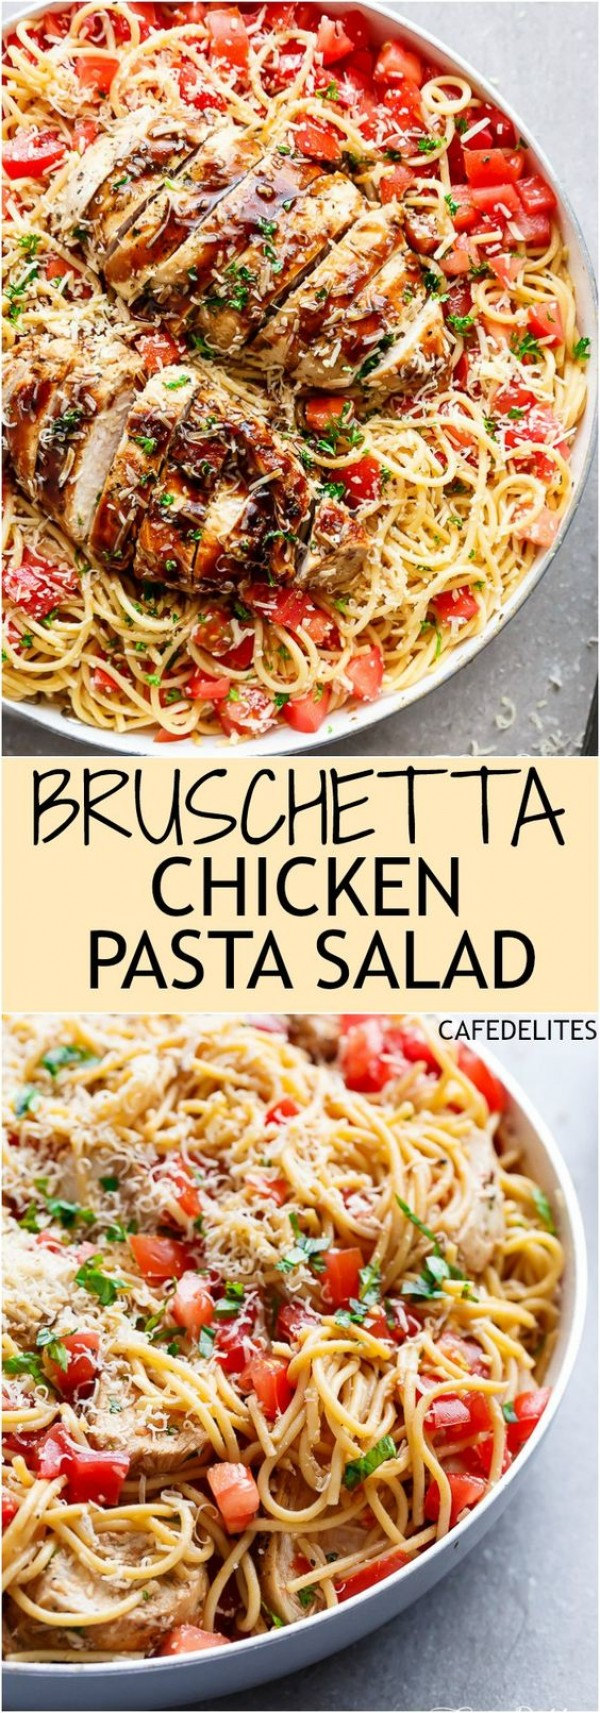 20 Unforgettable Chicken Recipes for a Romantic Dinner for Two - Get the recipe Bruschetta Chicken Pasta Salad @recipes_to_go